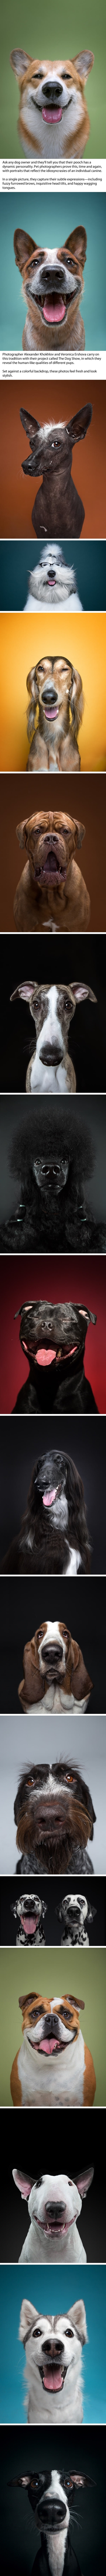 Artistic photos reveal the quirky human-like side of dogs